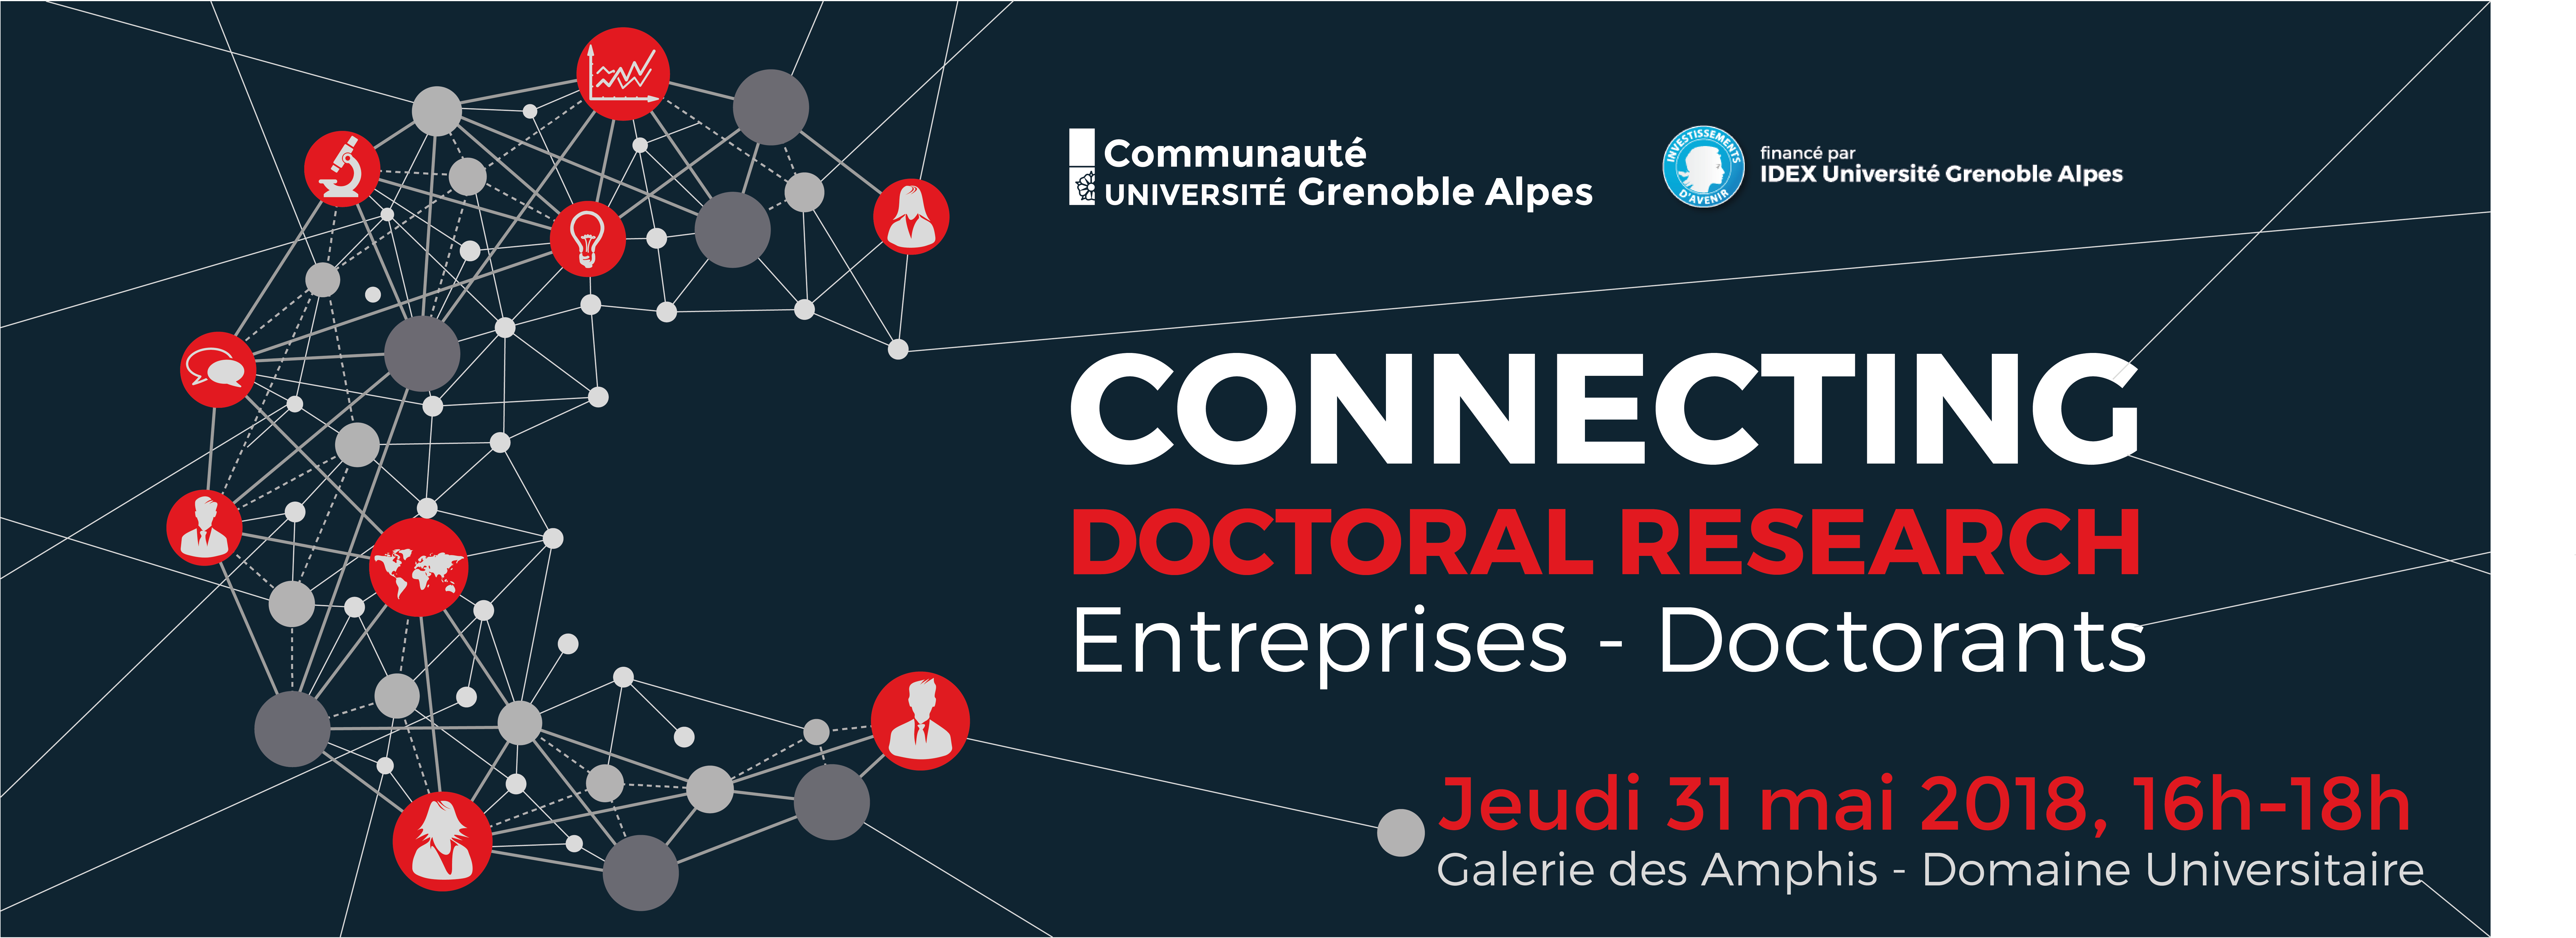 bannière connecting doctoral research